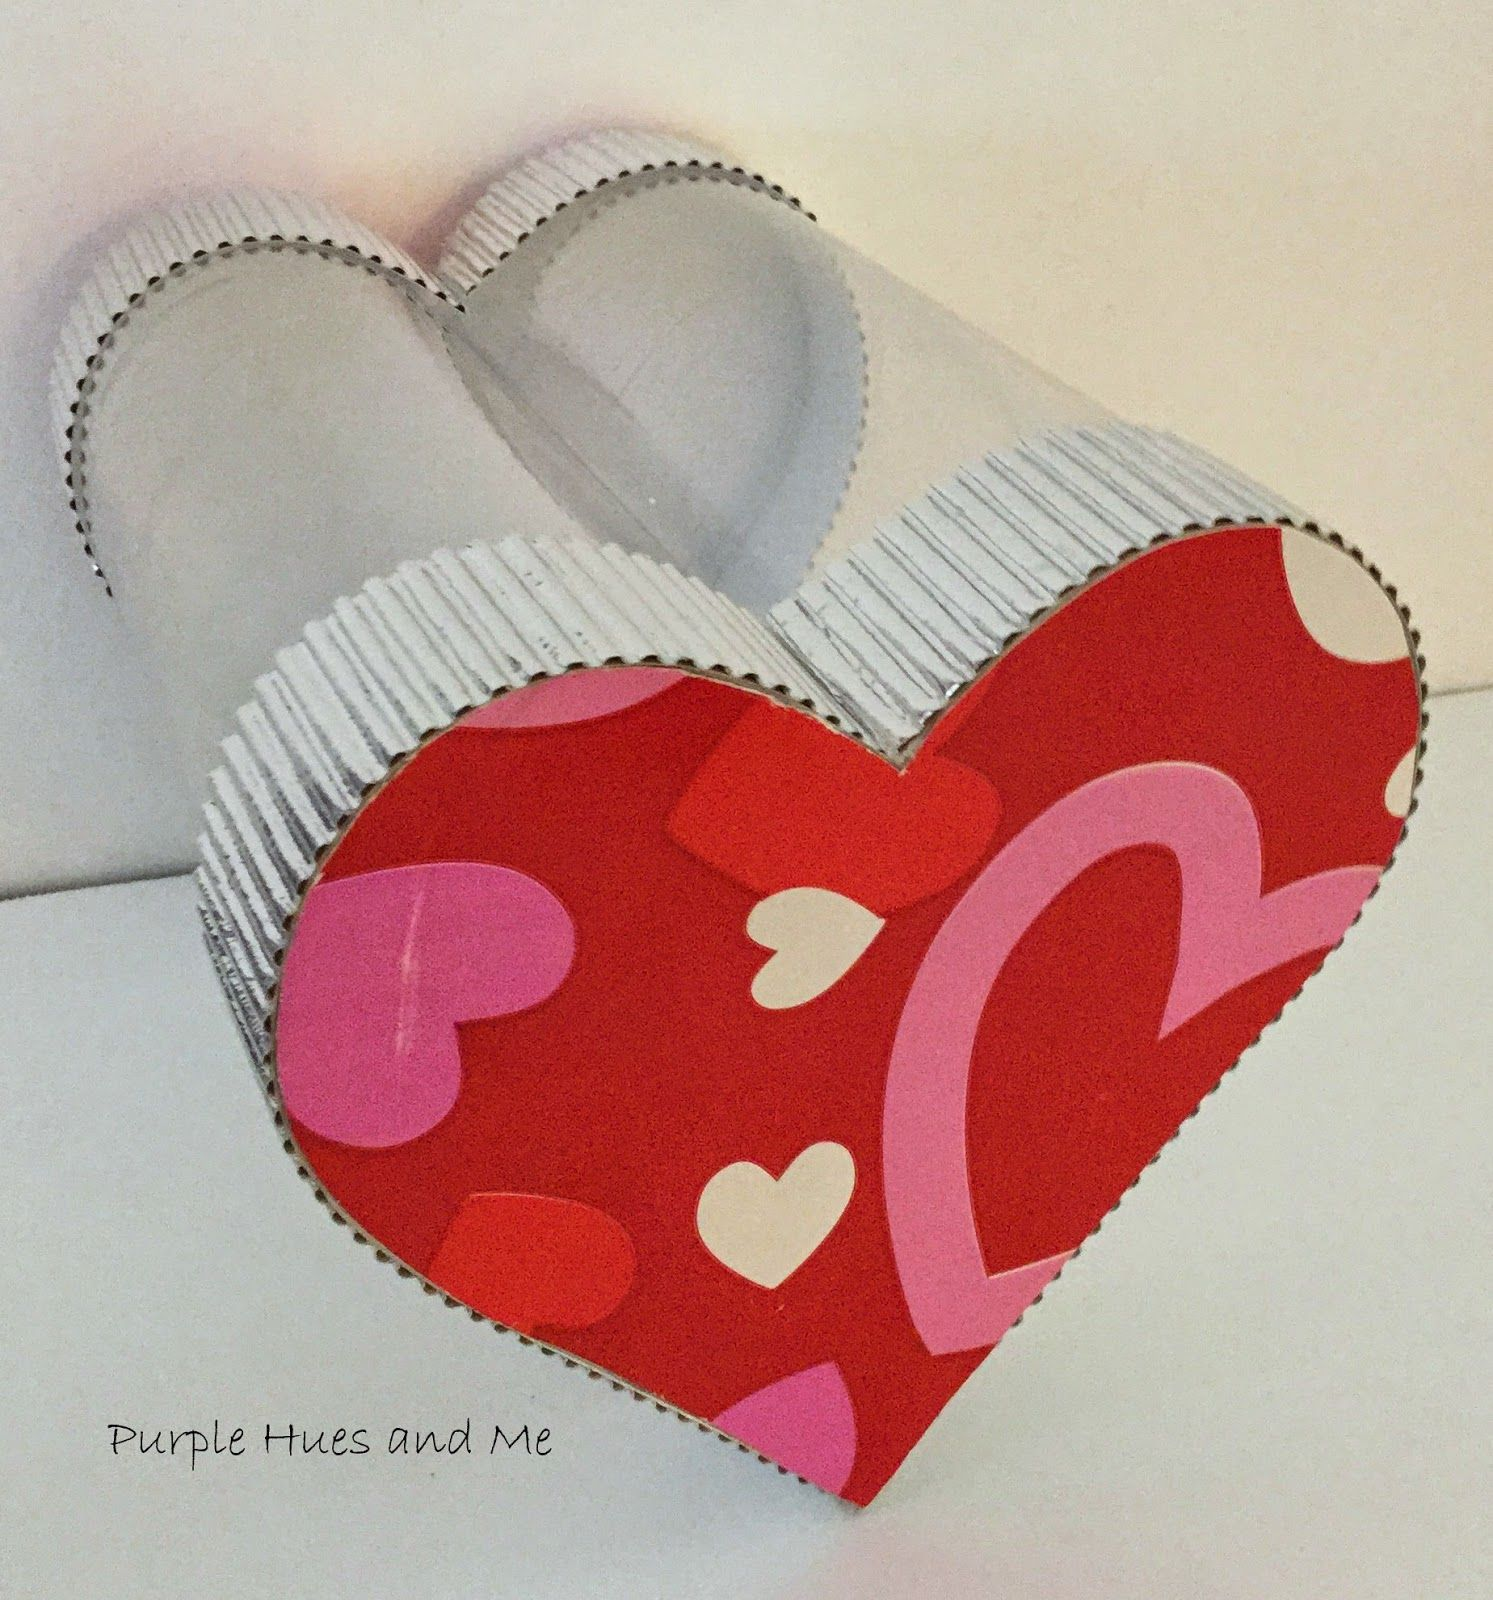 Recycled Soda Bottle Heart Shaped See-Thru Box - Very clever and relatively easy. & Recycled Soda Bottle Heart Shaped See-Thru Box - Very clever and ...